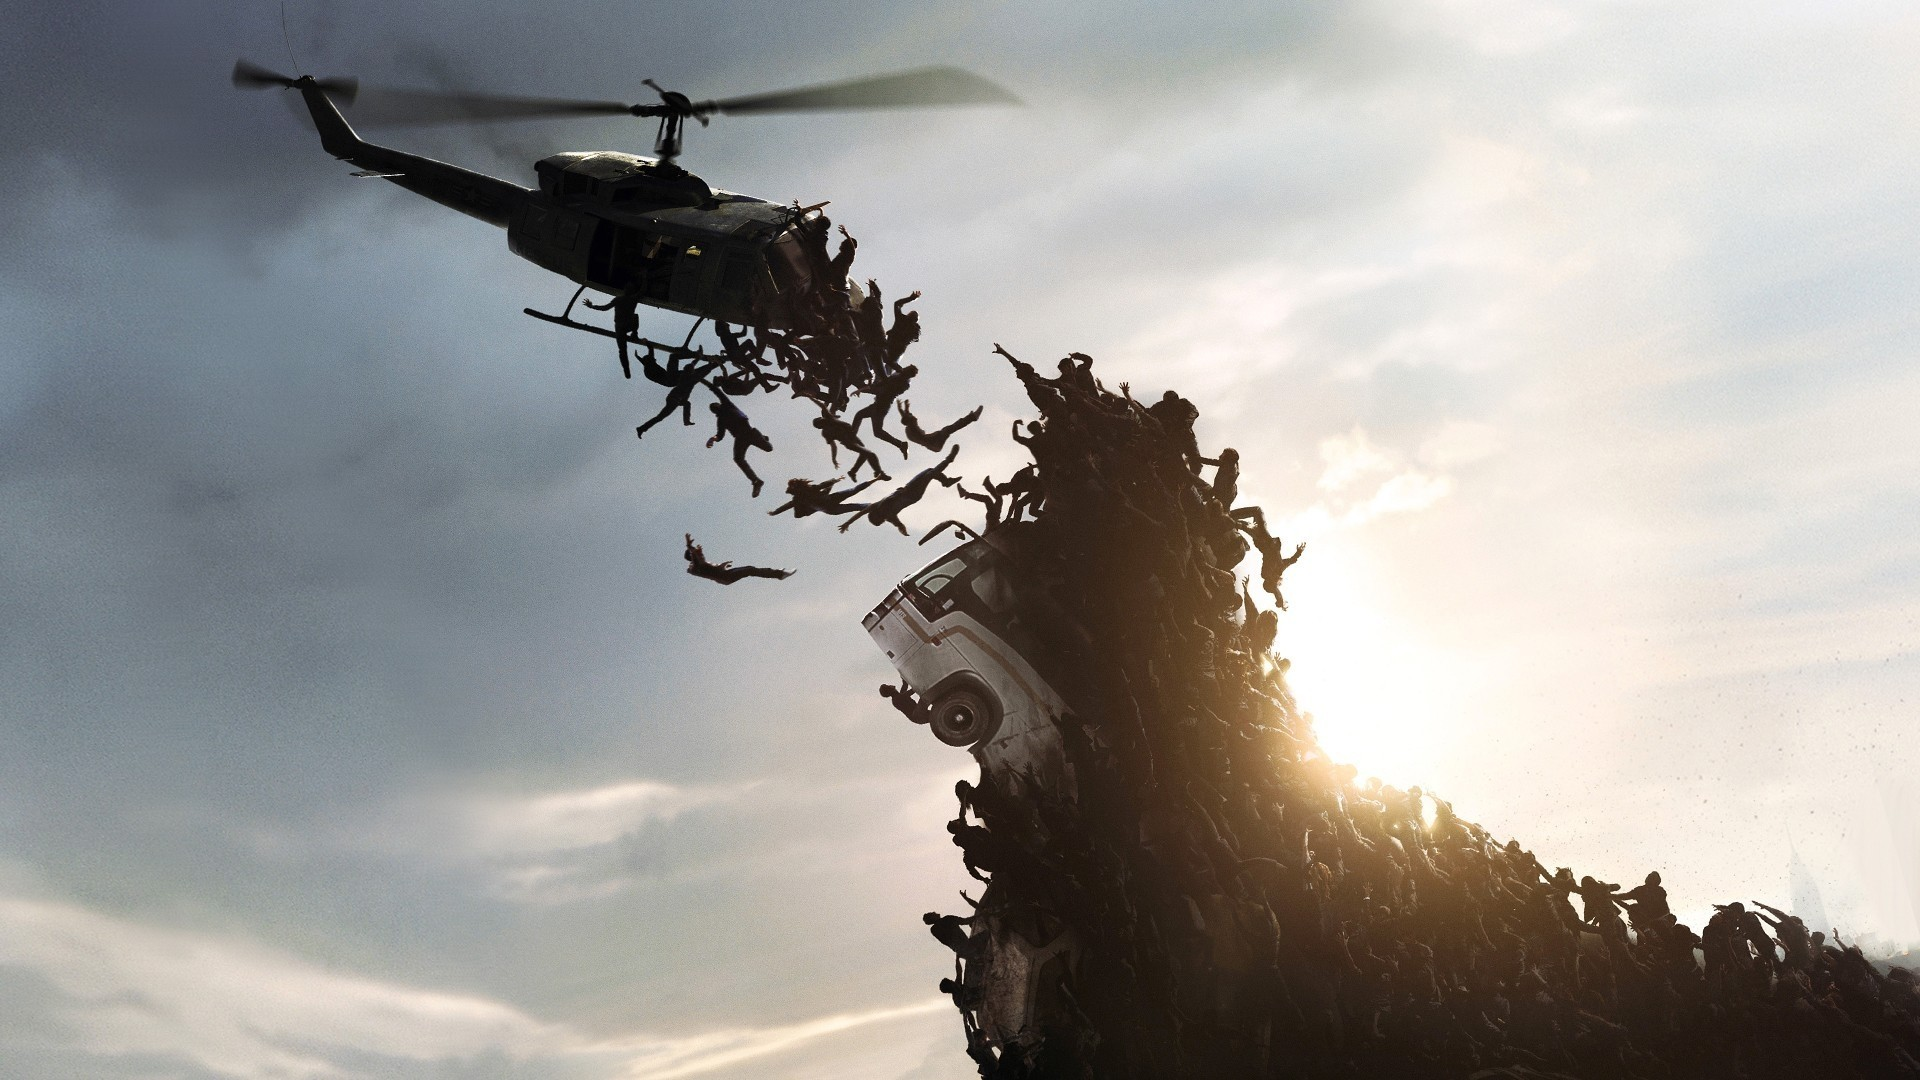 4598466 helicopters zombies movies World War Z wallpaper 1920x1080